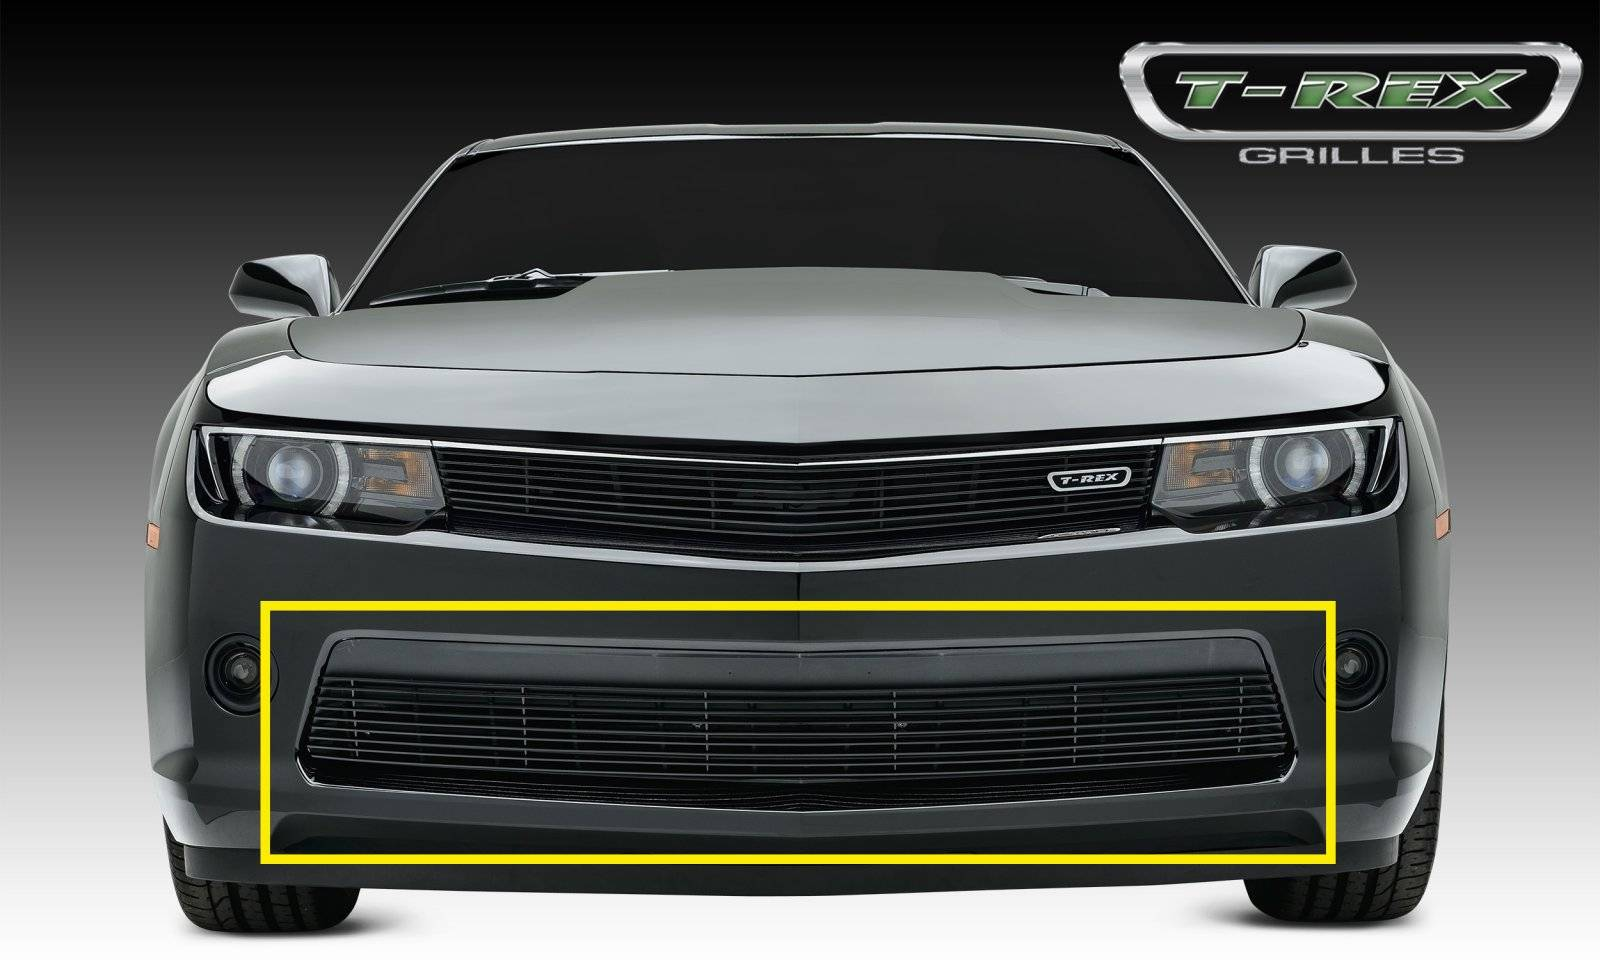 T-REX Grilles - Chevrolet Camaro RS Billet Grille, Bumper, Overlay, 1 Pc, Black Powdercoated Aluminum Bars - Pt # 25031b